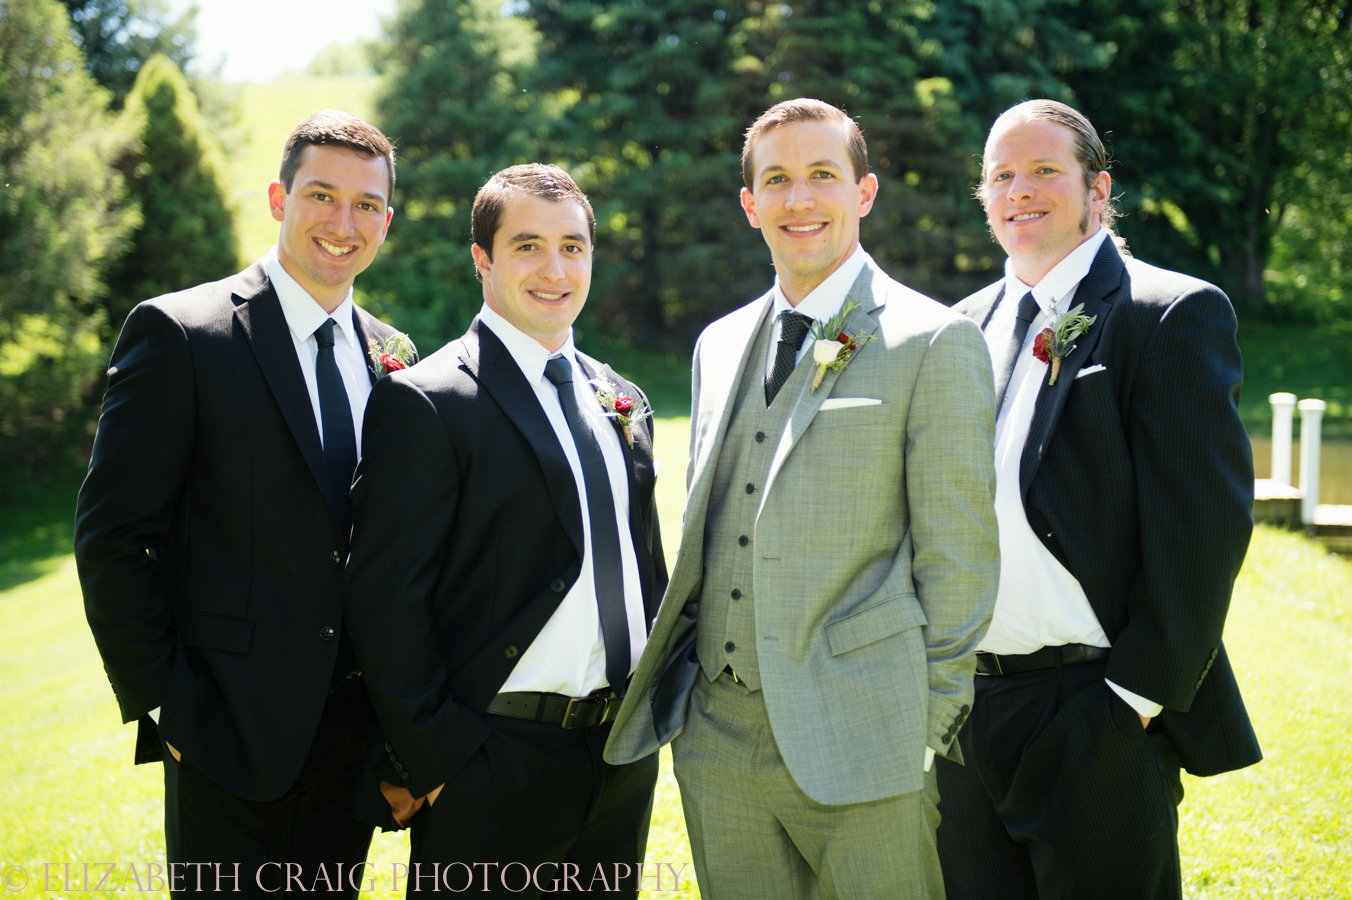 Shady Elms Farm Weddings and Receptions Elizabeth Craig Photography-0058